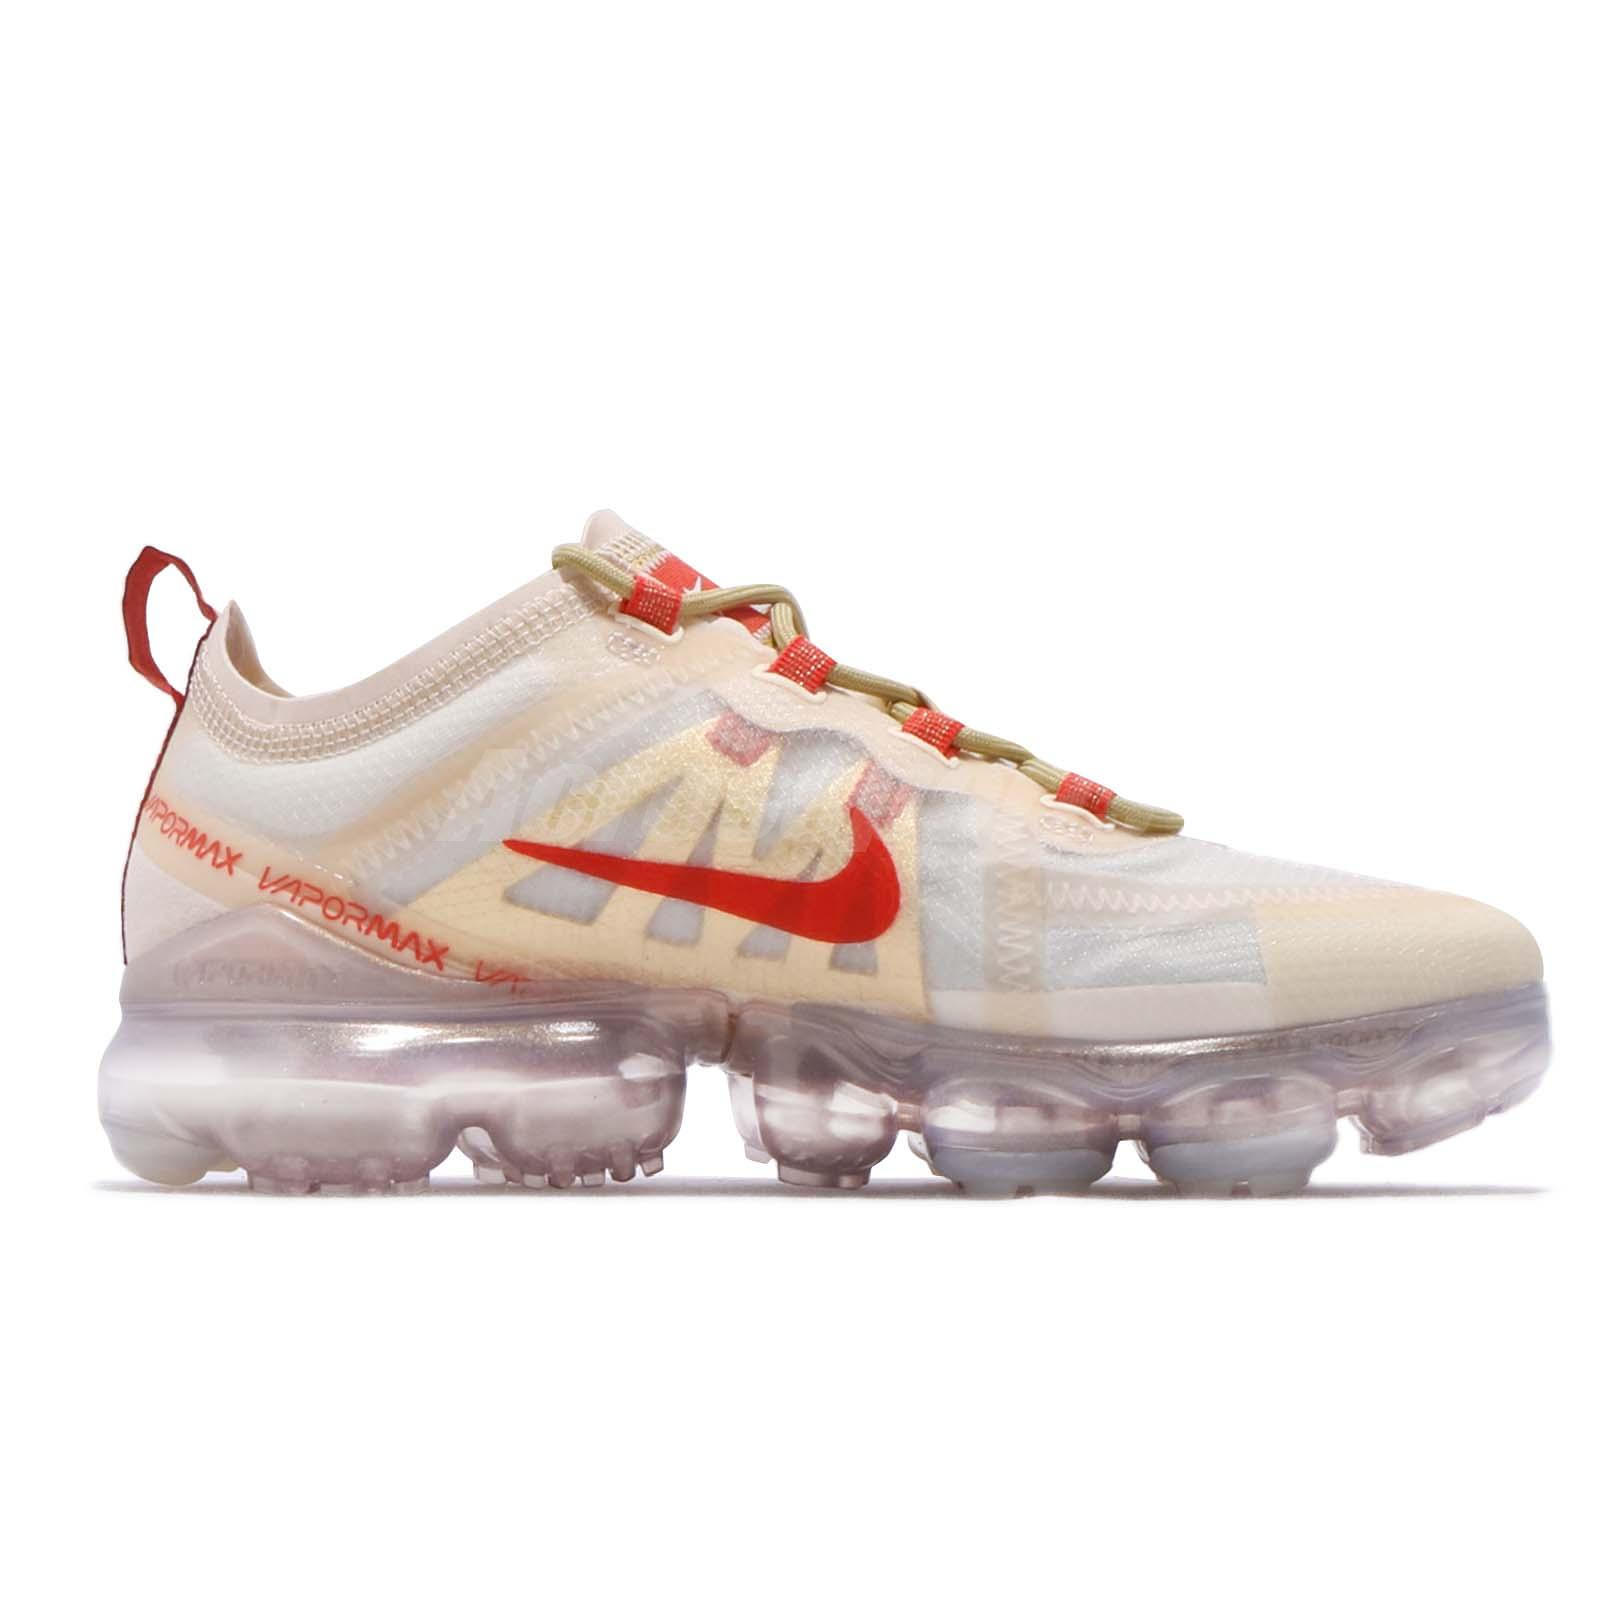 87371c290d3ea Nike Wmns Air Vapormax 2019 CNY Chinese New Year Women Shoes ...